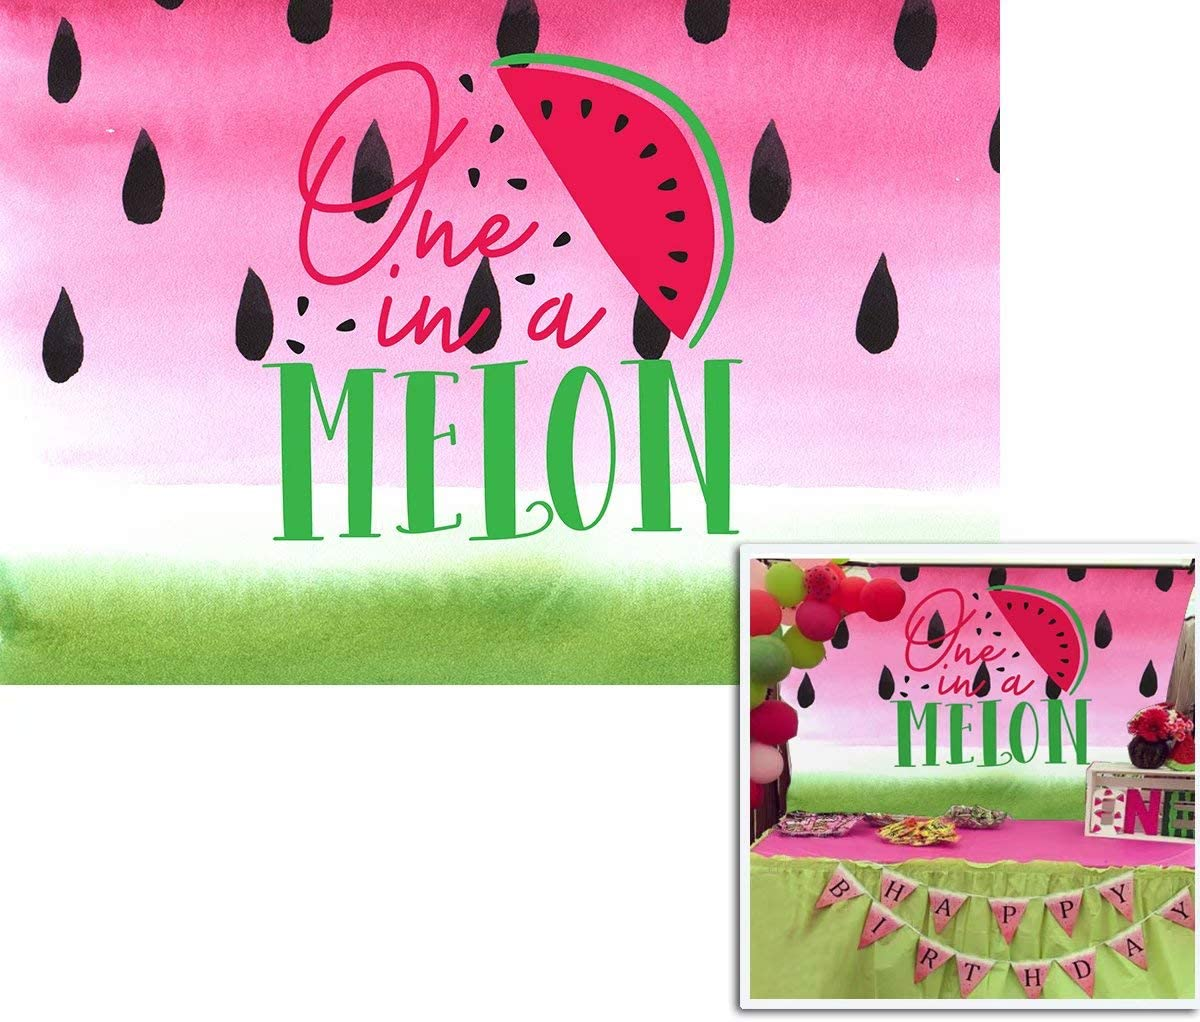 Renaiss 12x10ft Happy Birthday Backdrop Cartoon Watermelon Our Litter Sweet is in a Melon Photography Background Baby Girl 1st Birthday Party Banner Decoration Cake Table Studio Photo Booth Props